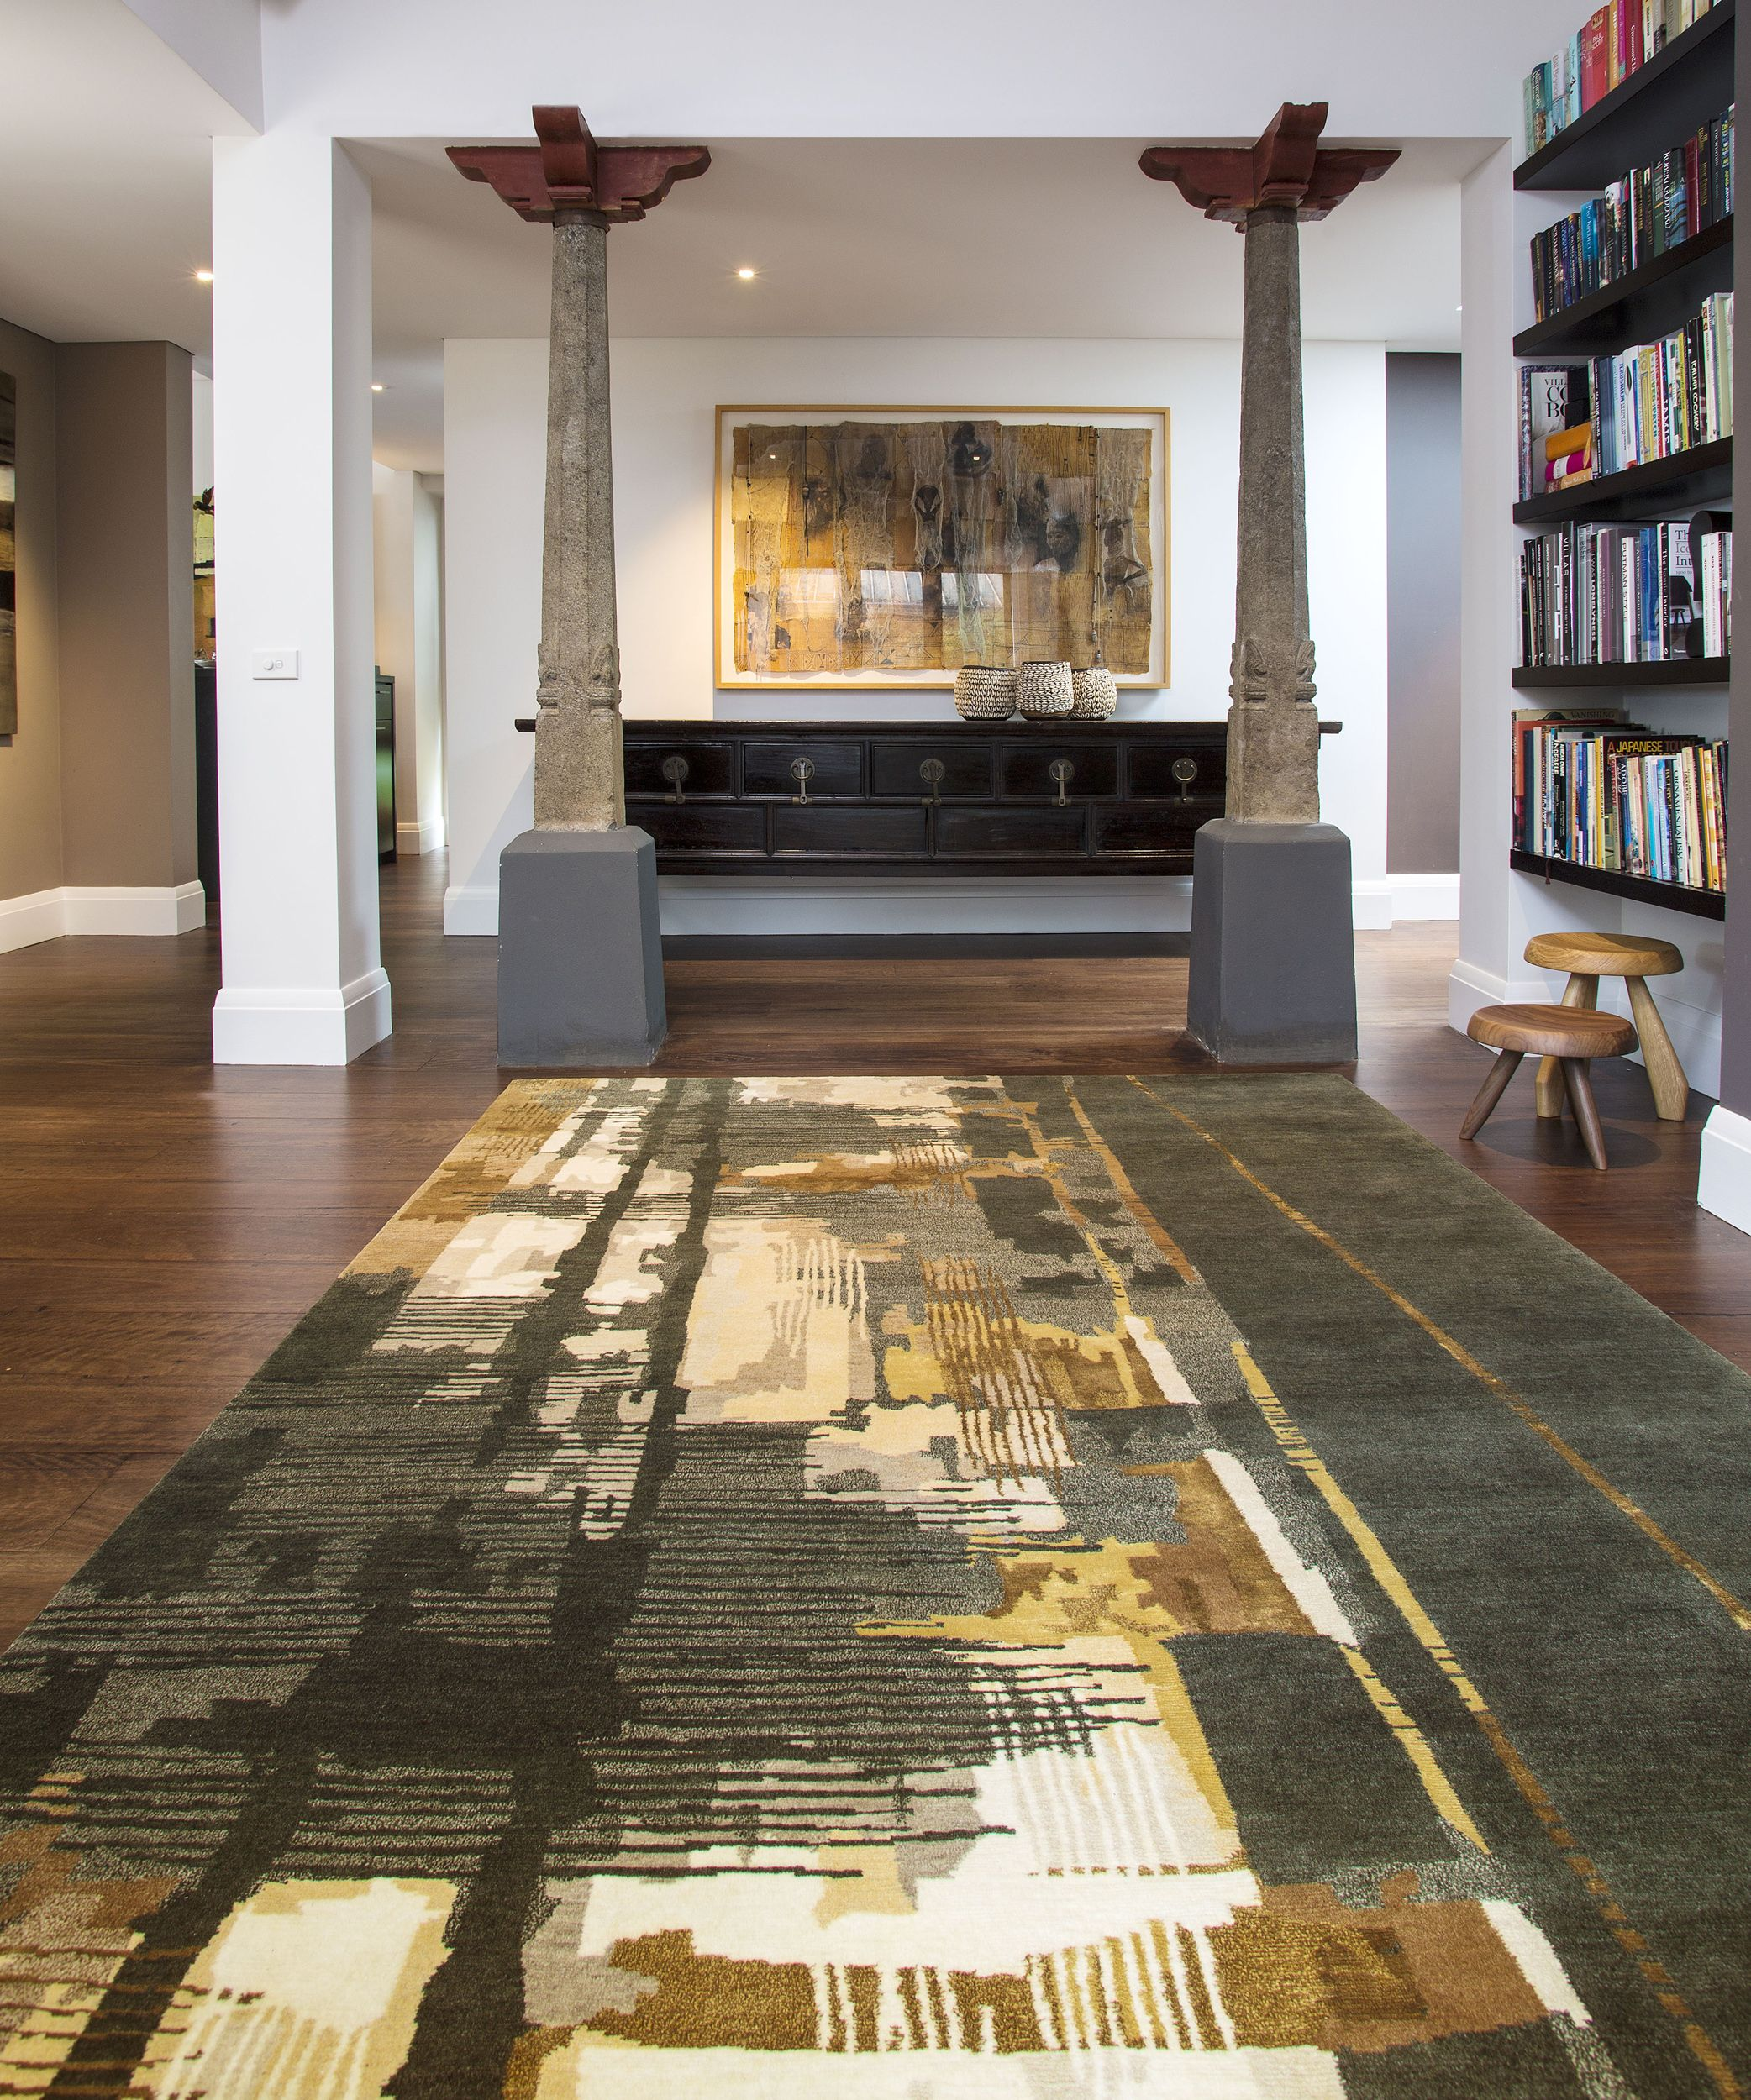 Unearthed Meryl Hare S Design Studio Has Just Released A Signature Rug Collection In Collaboration With Designer Rugs Tha Australian Design Rug Design Design